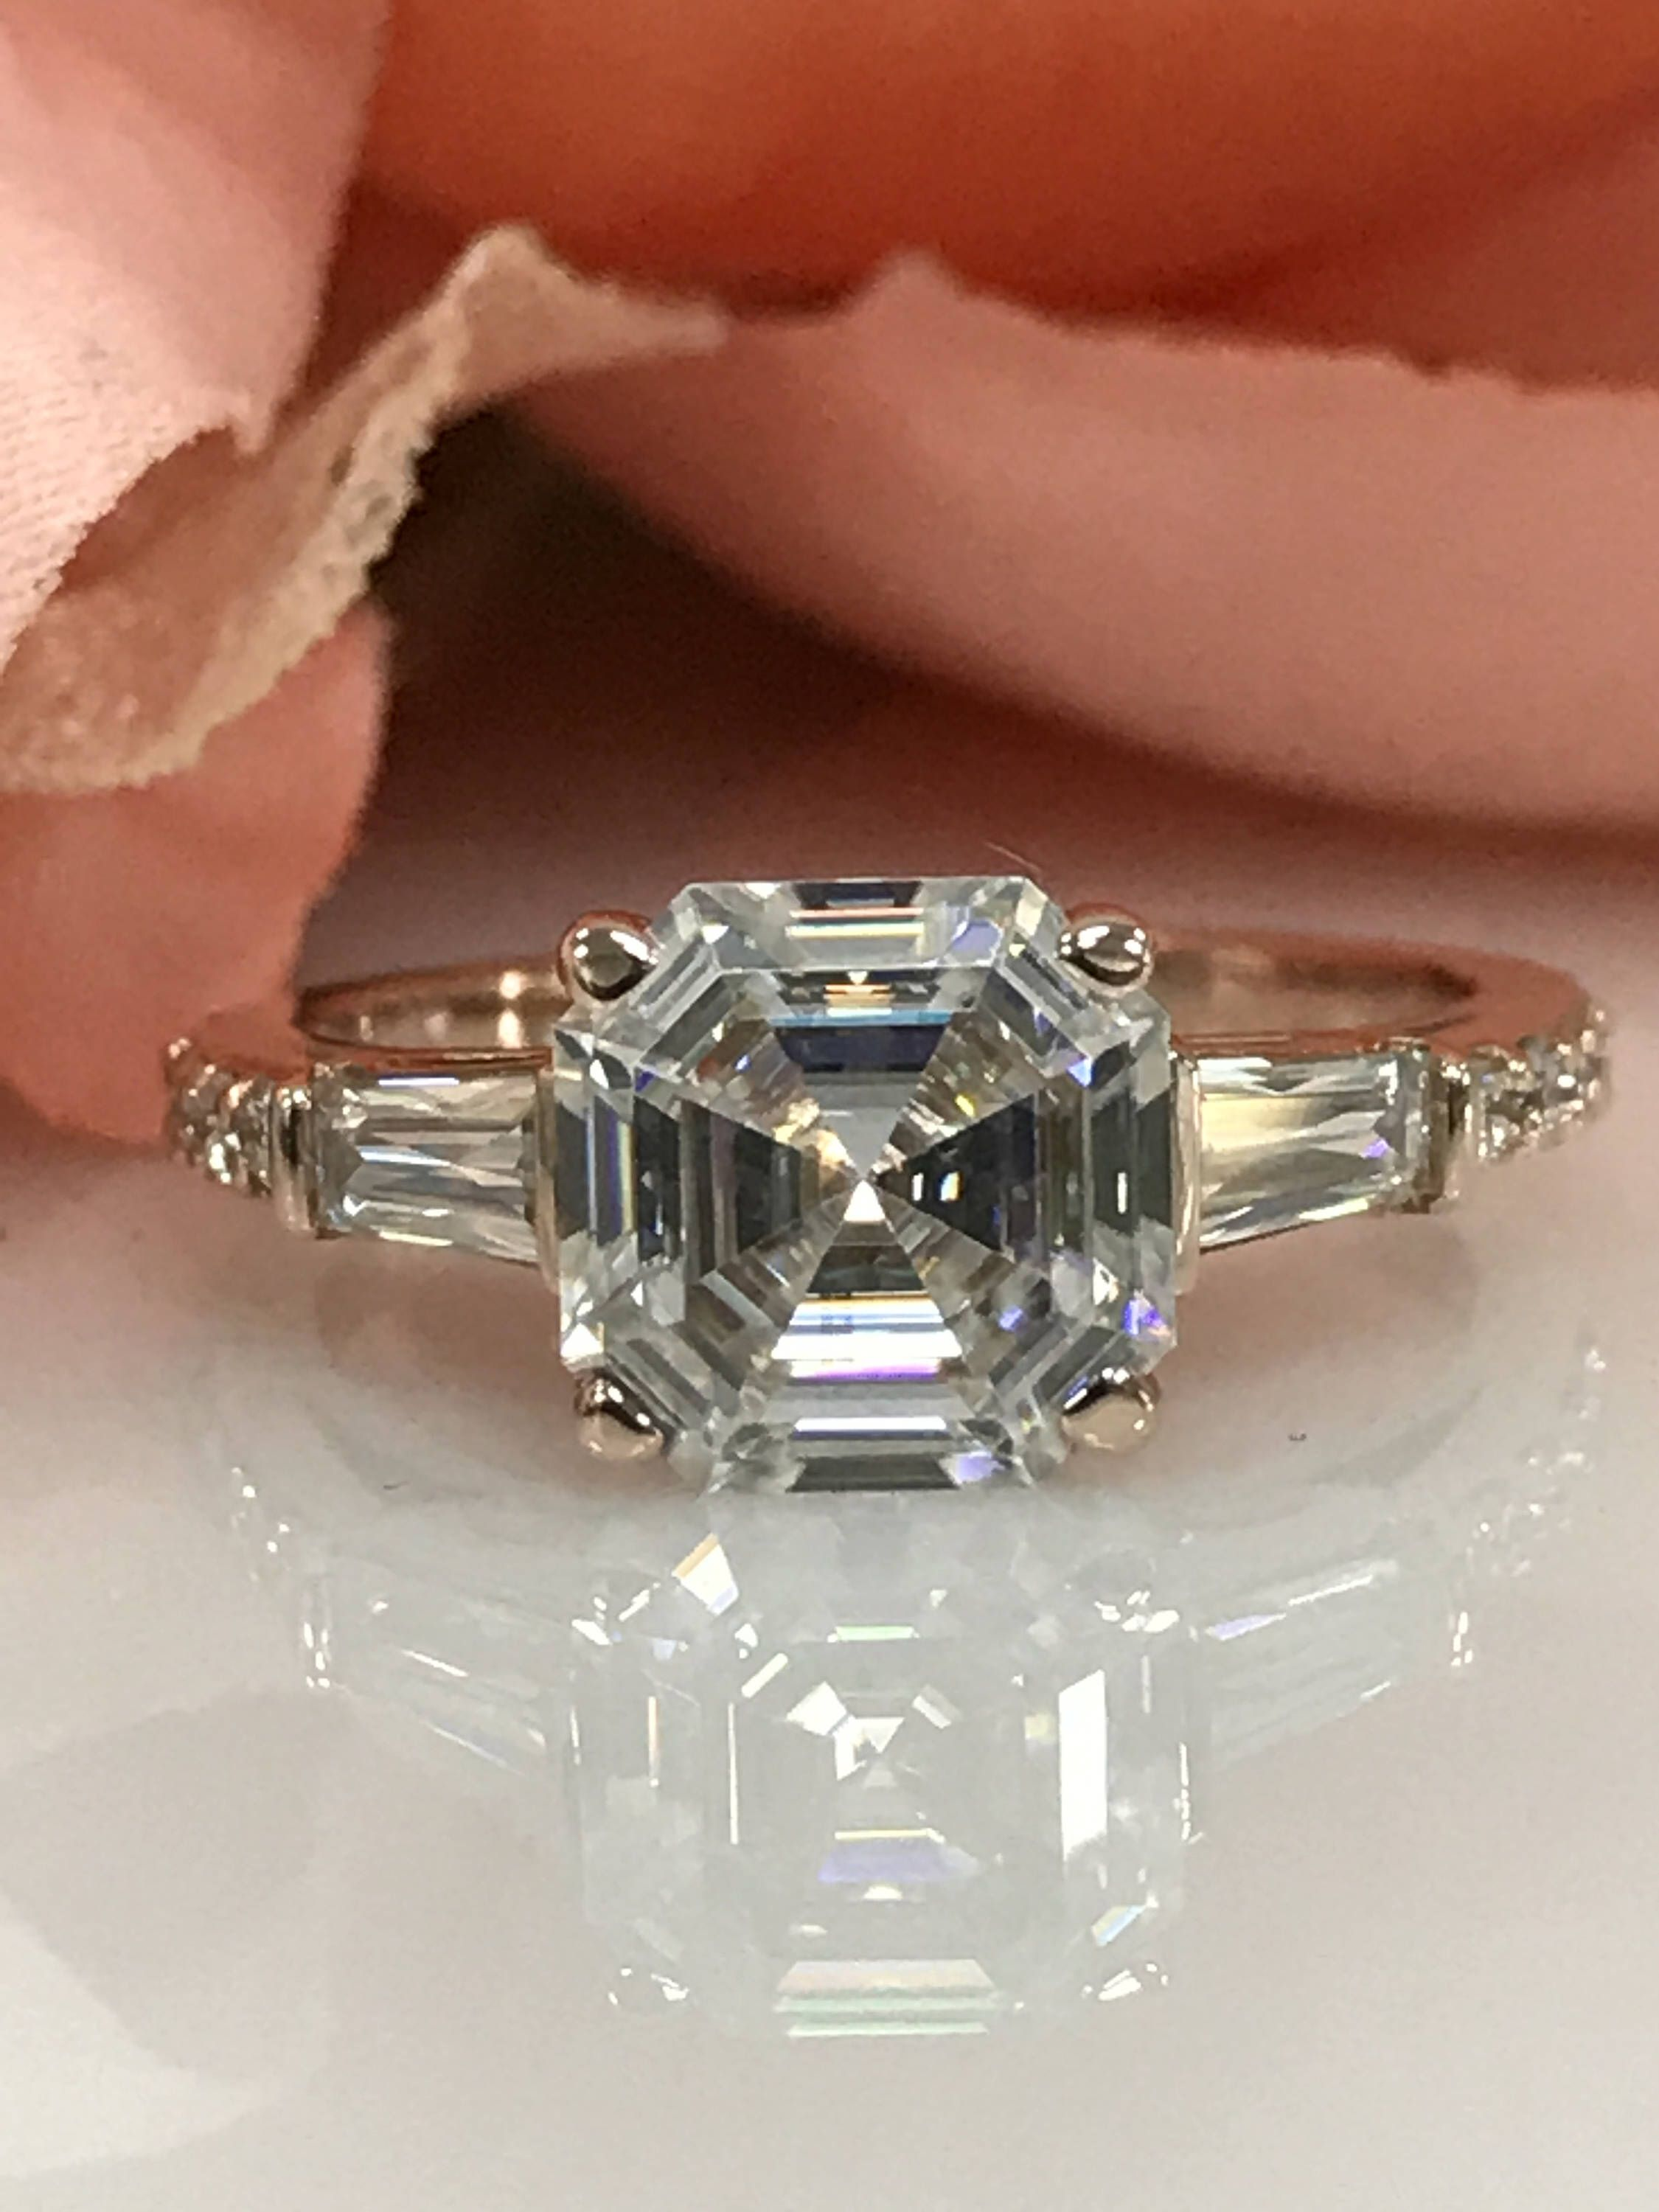 campbell baguettes certified rings cut products ring bespoke tapper gia platinum jewellery engagement campbelljewellers asscher diamond